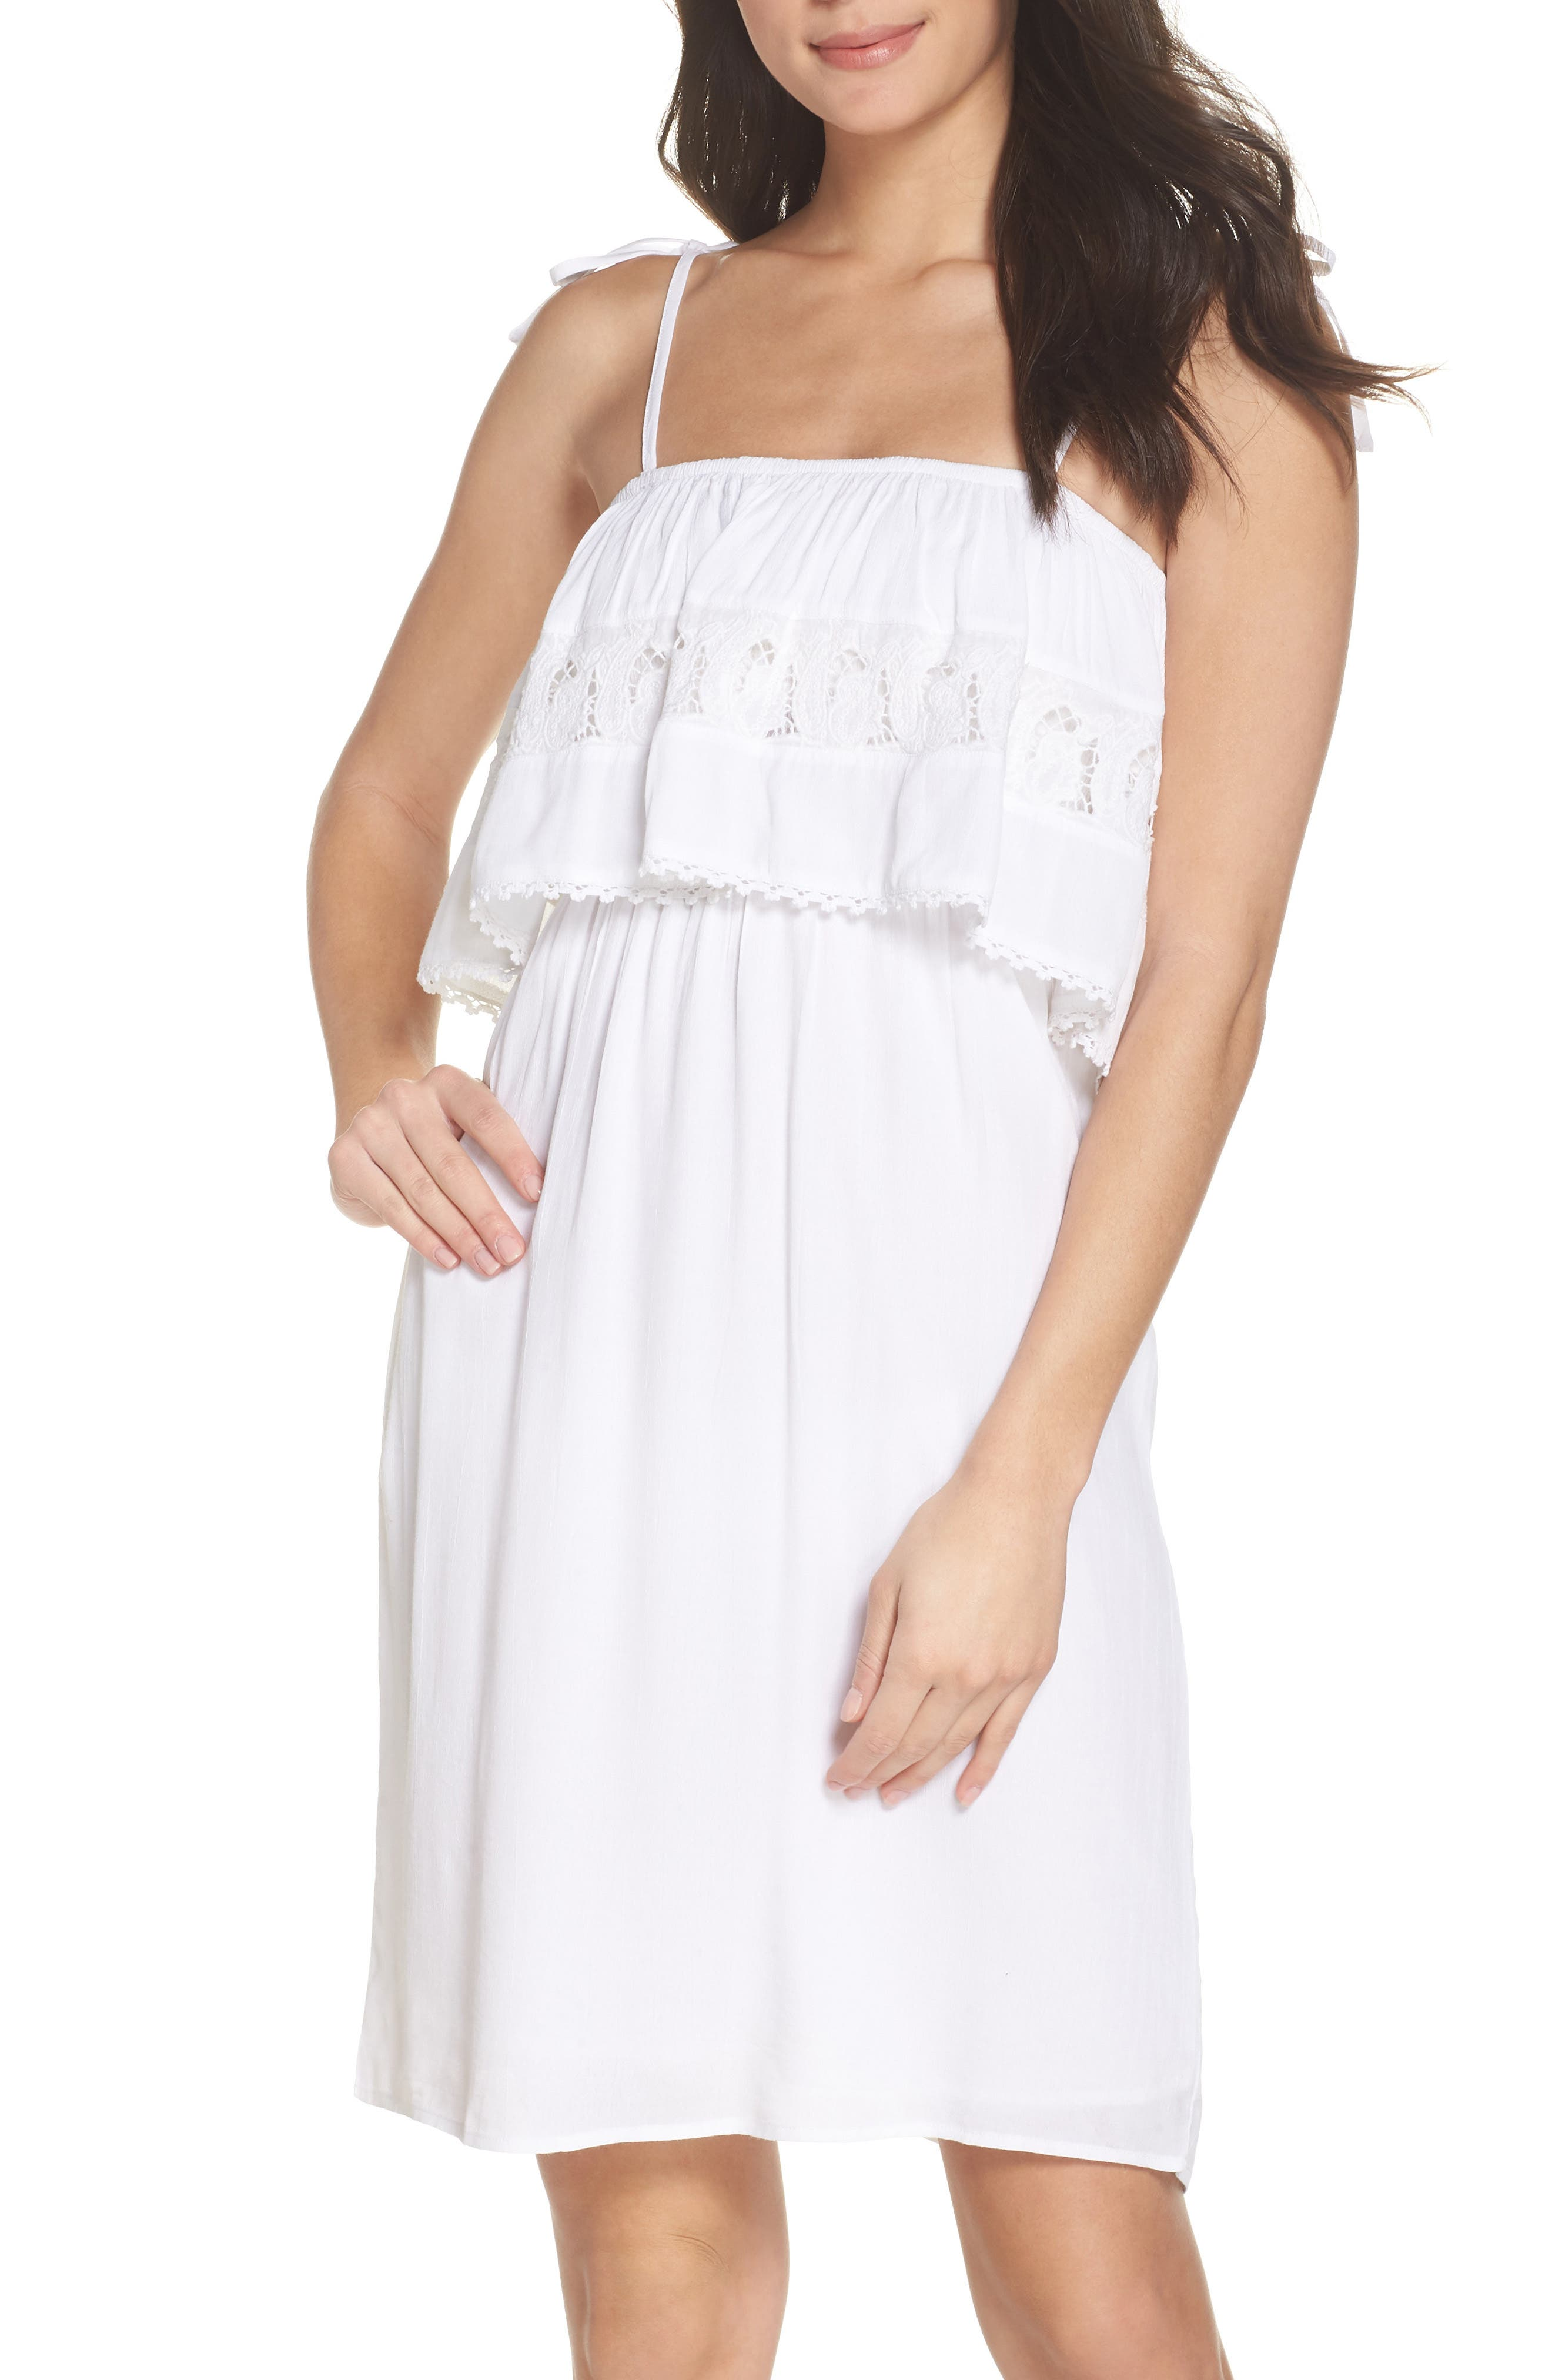 Jaclyn Cover-Up Dress,                             Main thumbnail 1, color,                             White